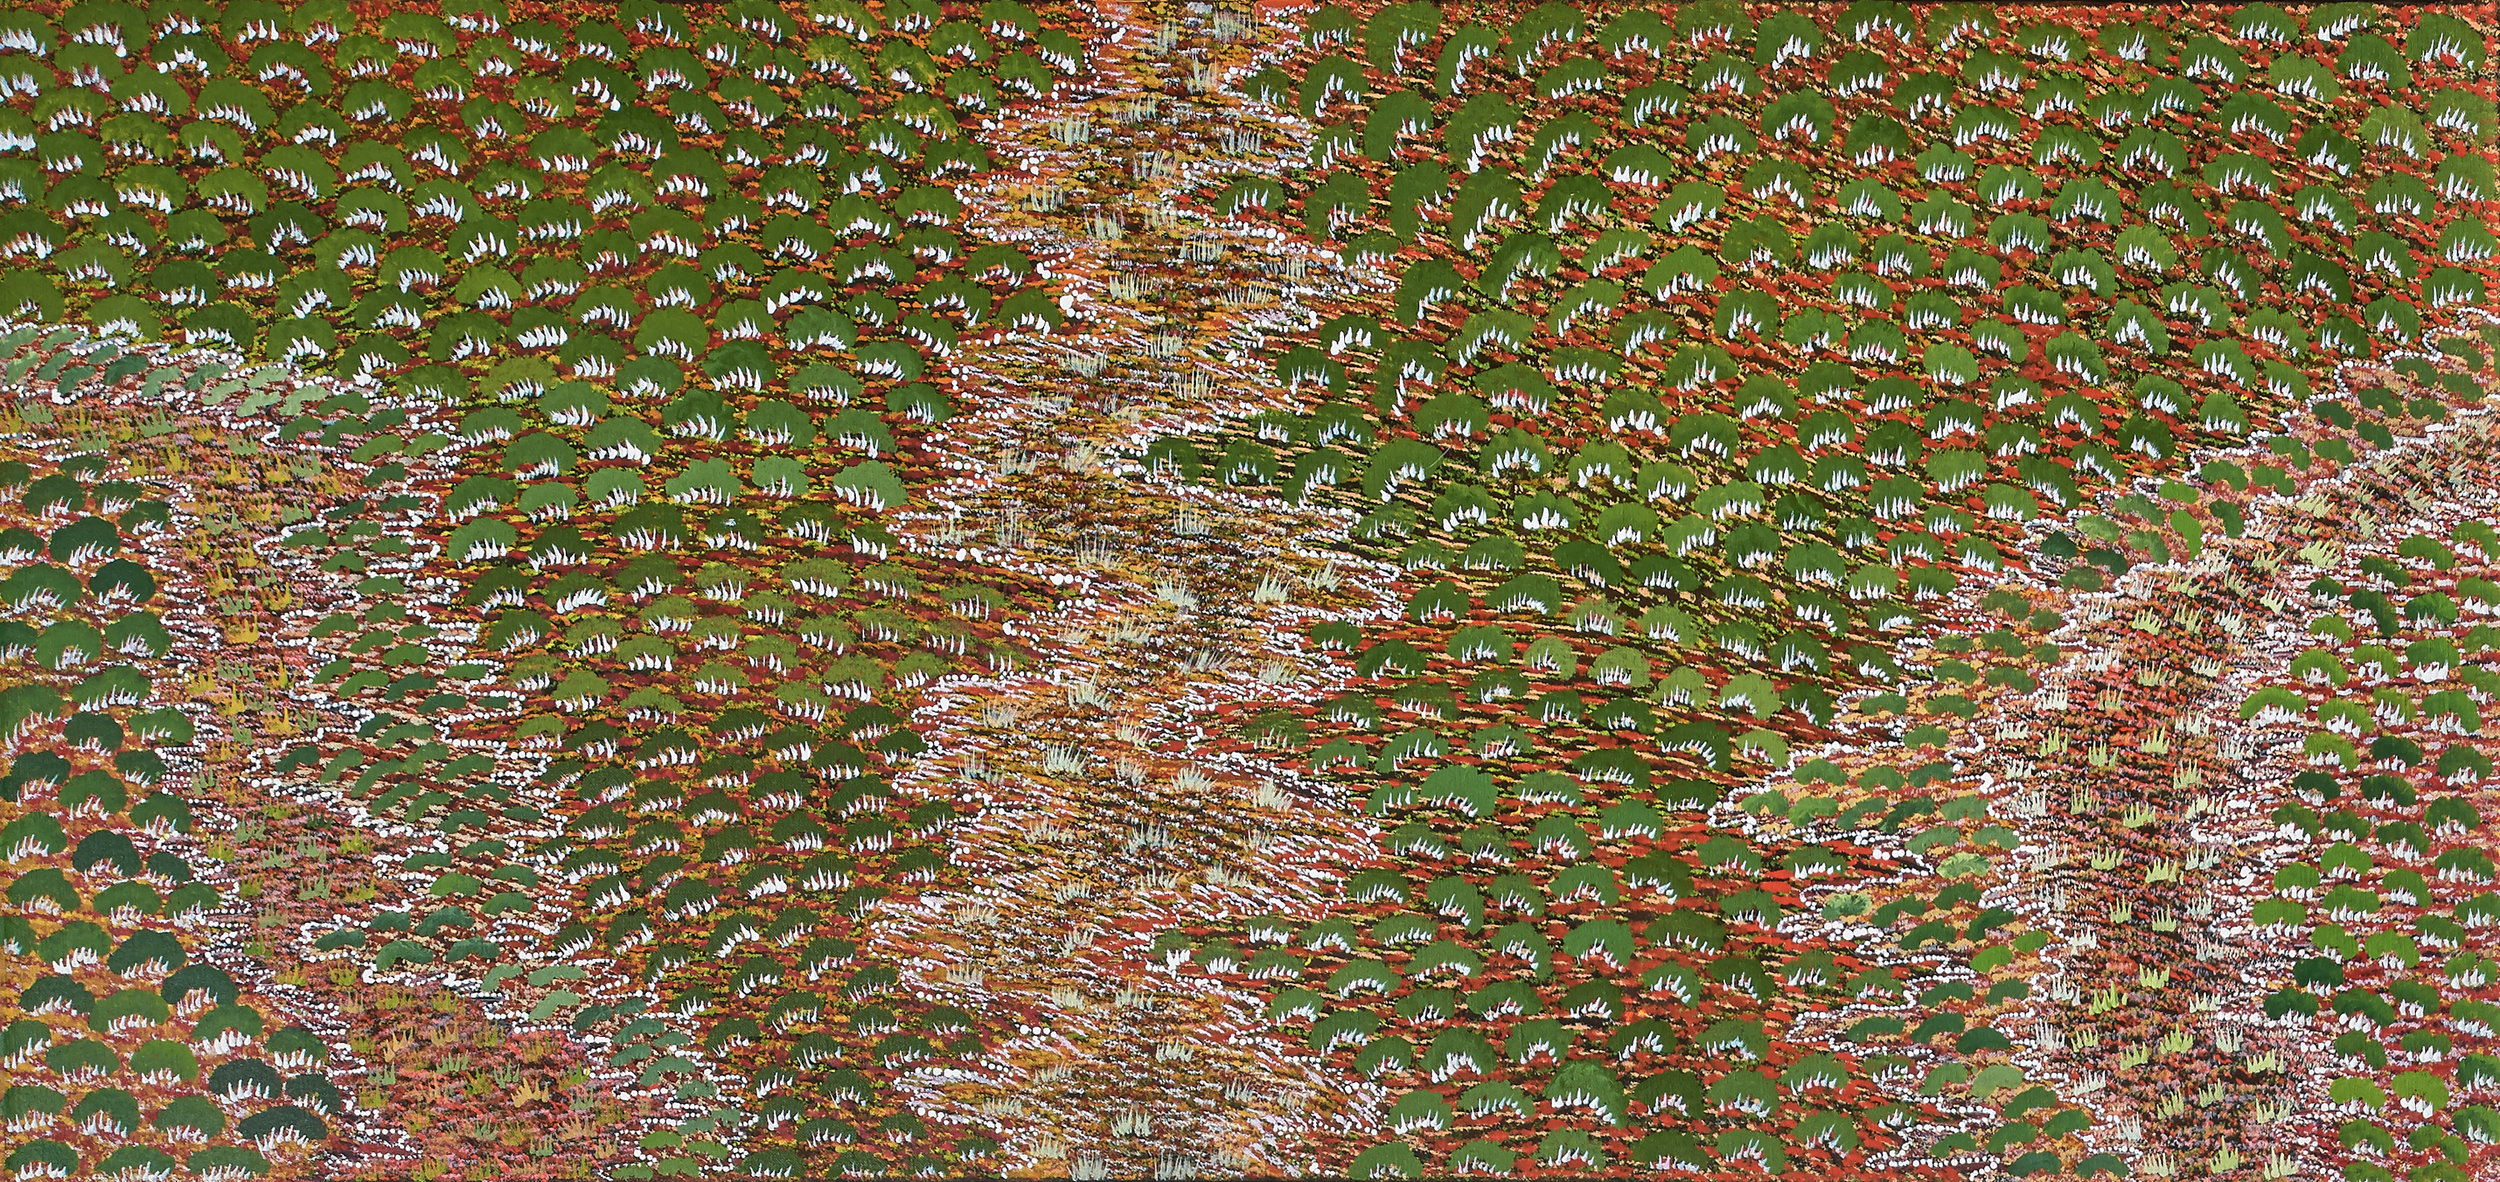 My Grandmother's Country by Denise Ngwarraye Bonney 107x51cm available online or in the gallery.